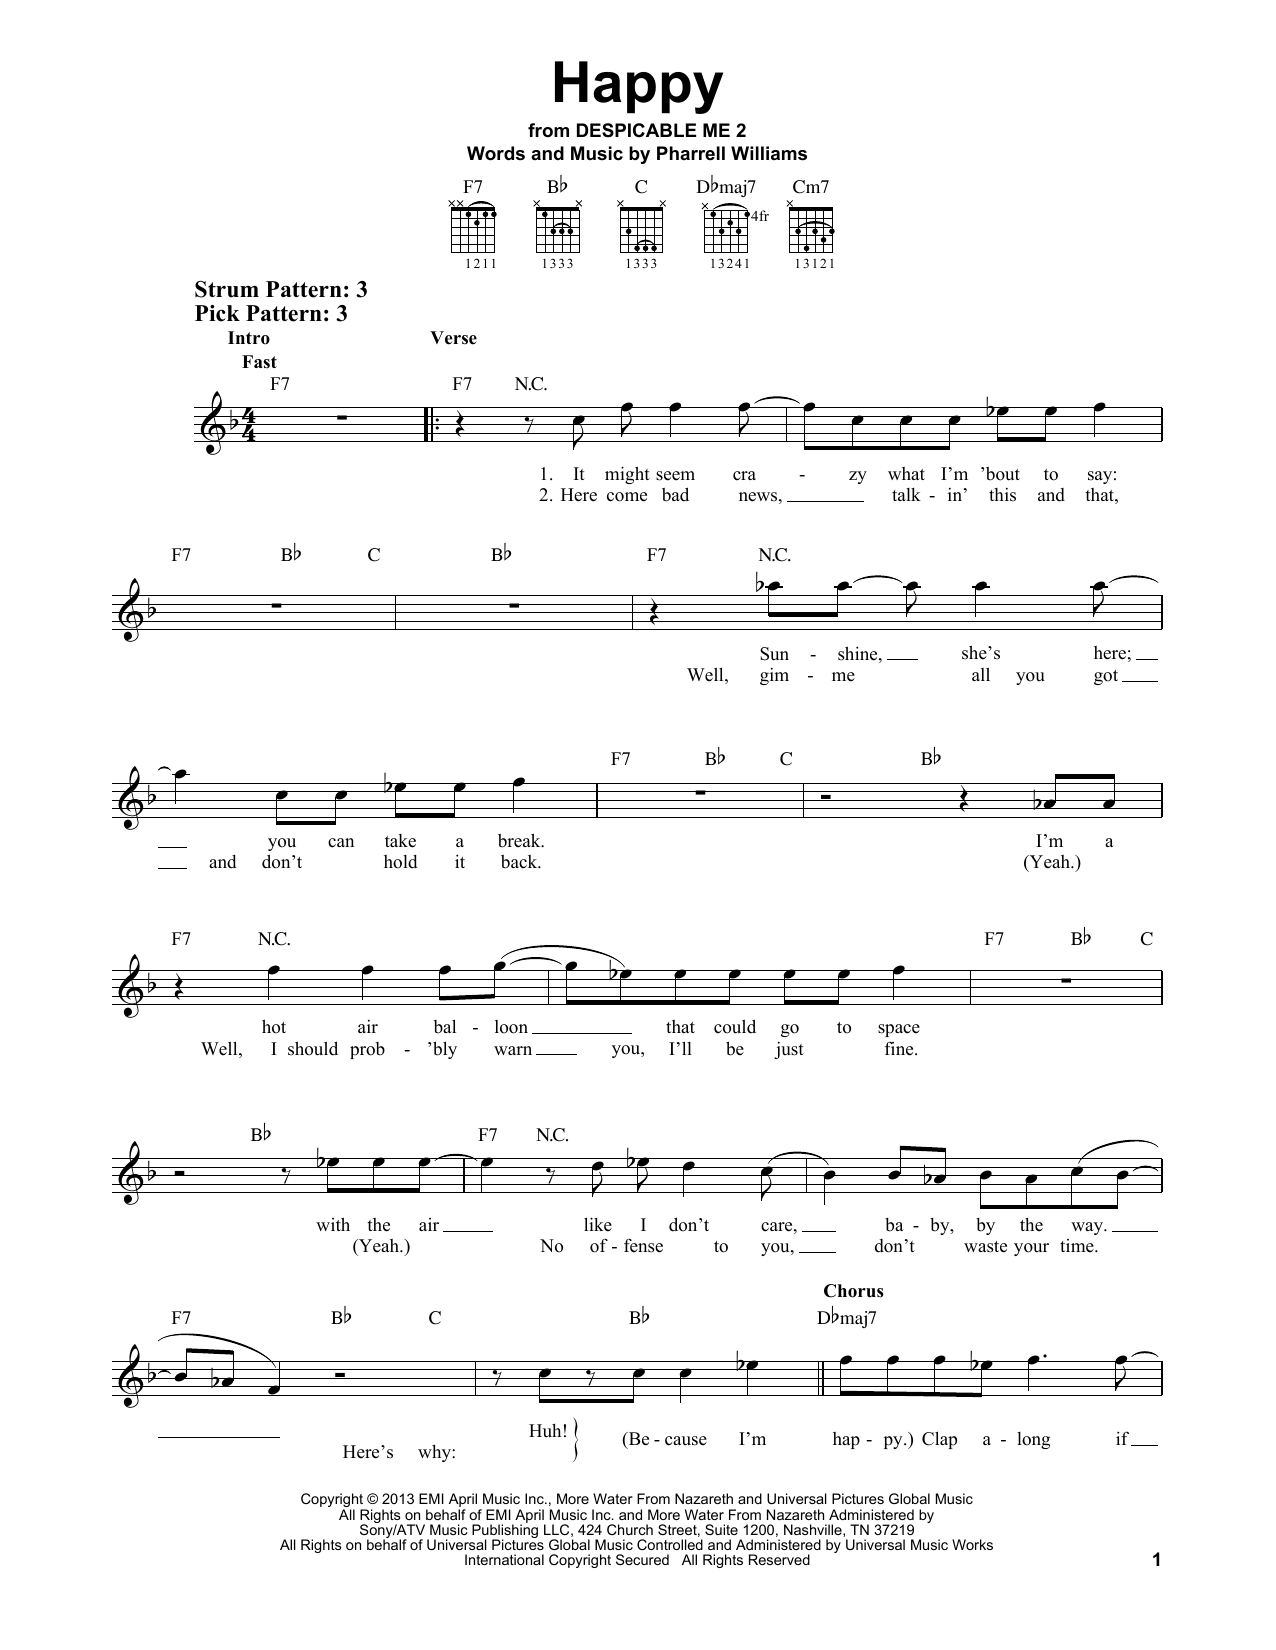 Pharrell Happy sheet music notes and chords. Download Printable PDF.